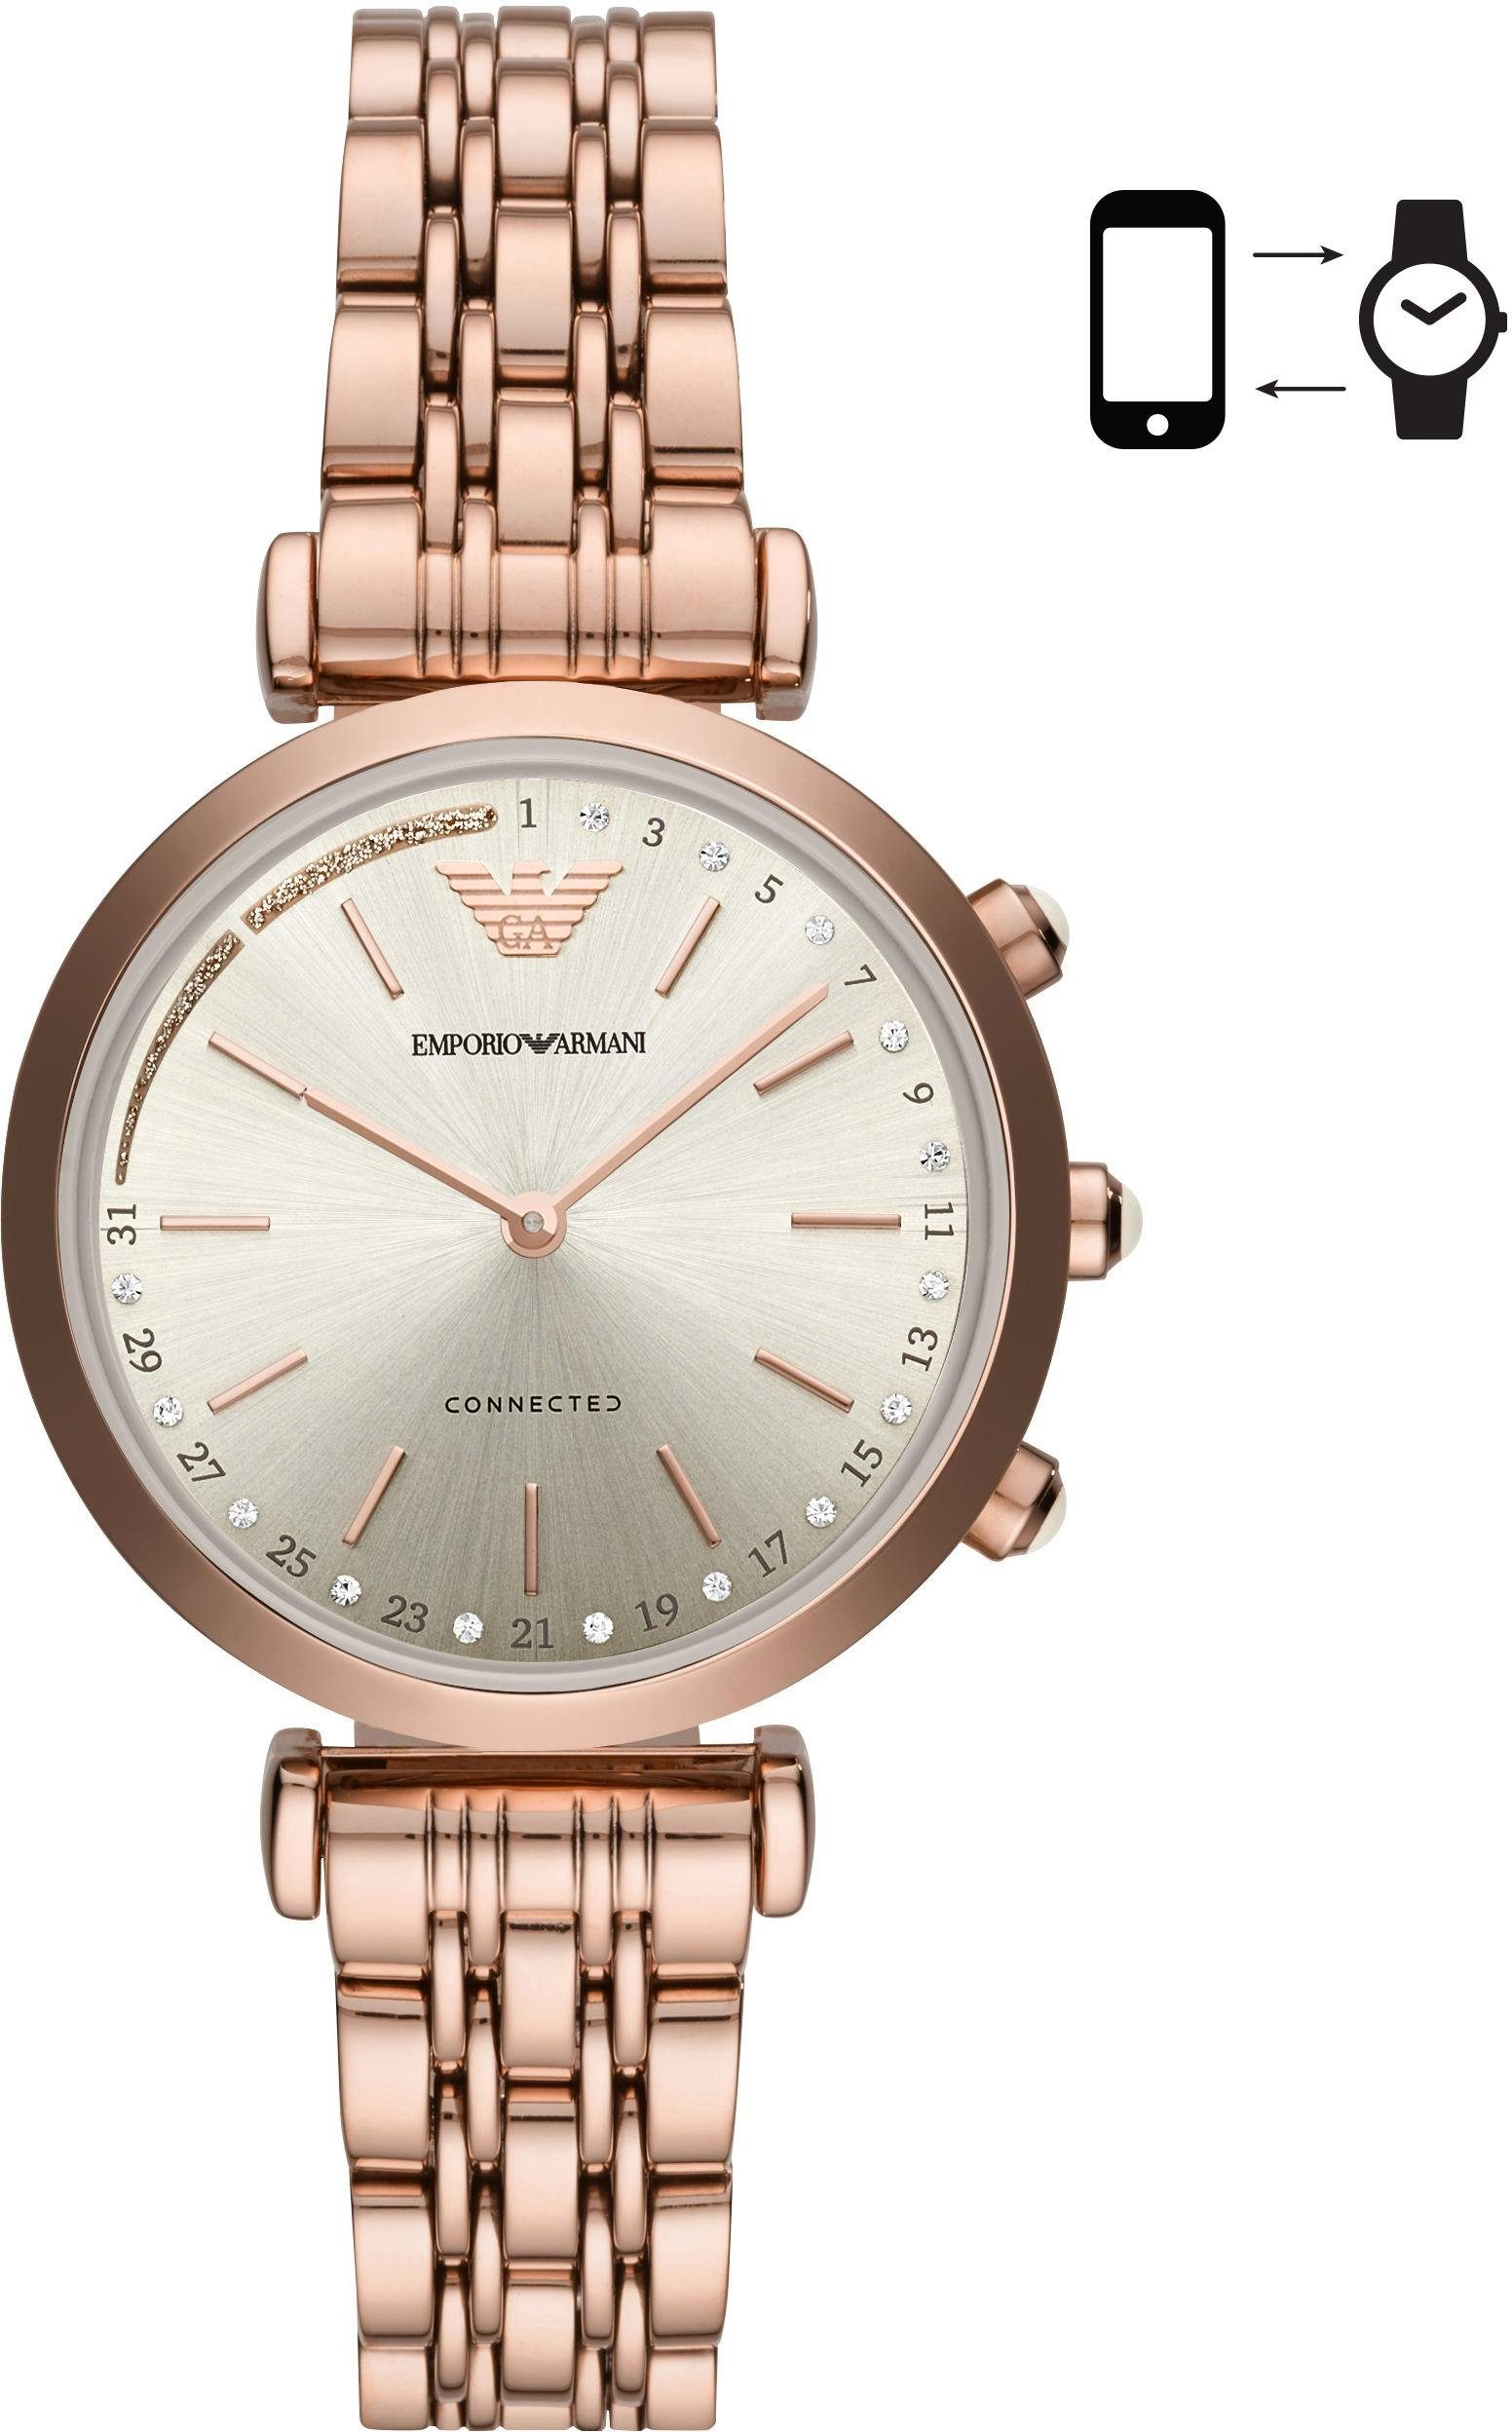 EMPORIO ARMANI CONNECTED ART3026 Smartwatch